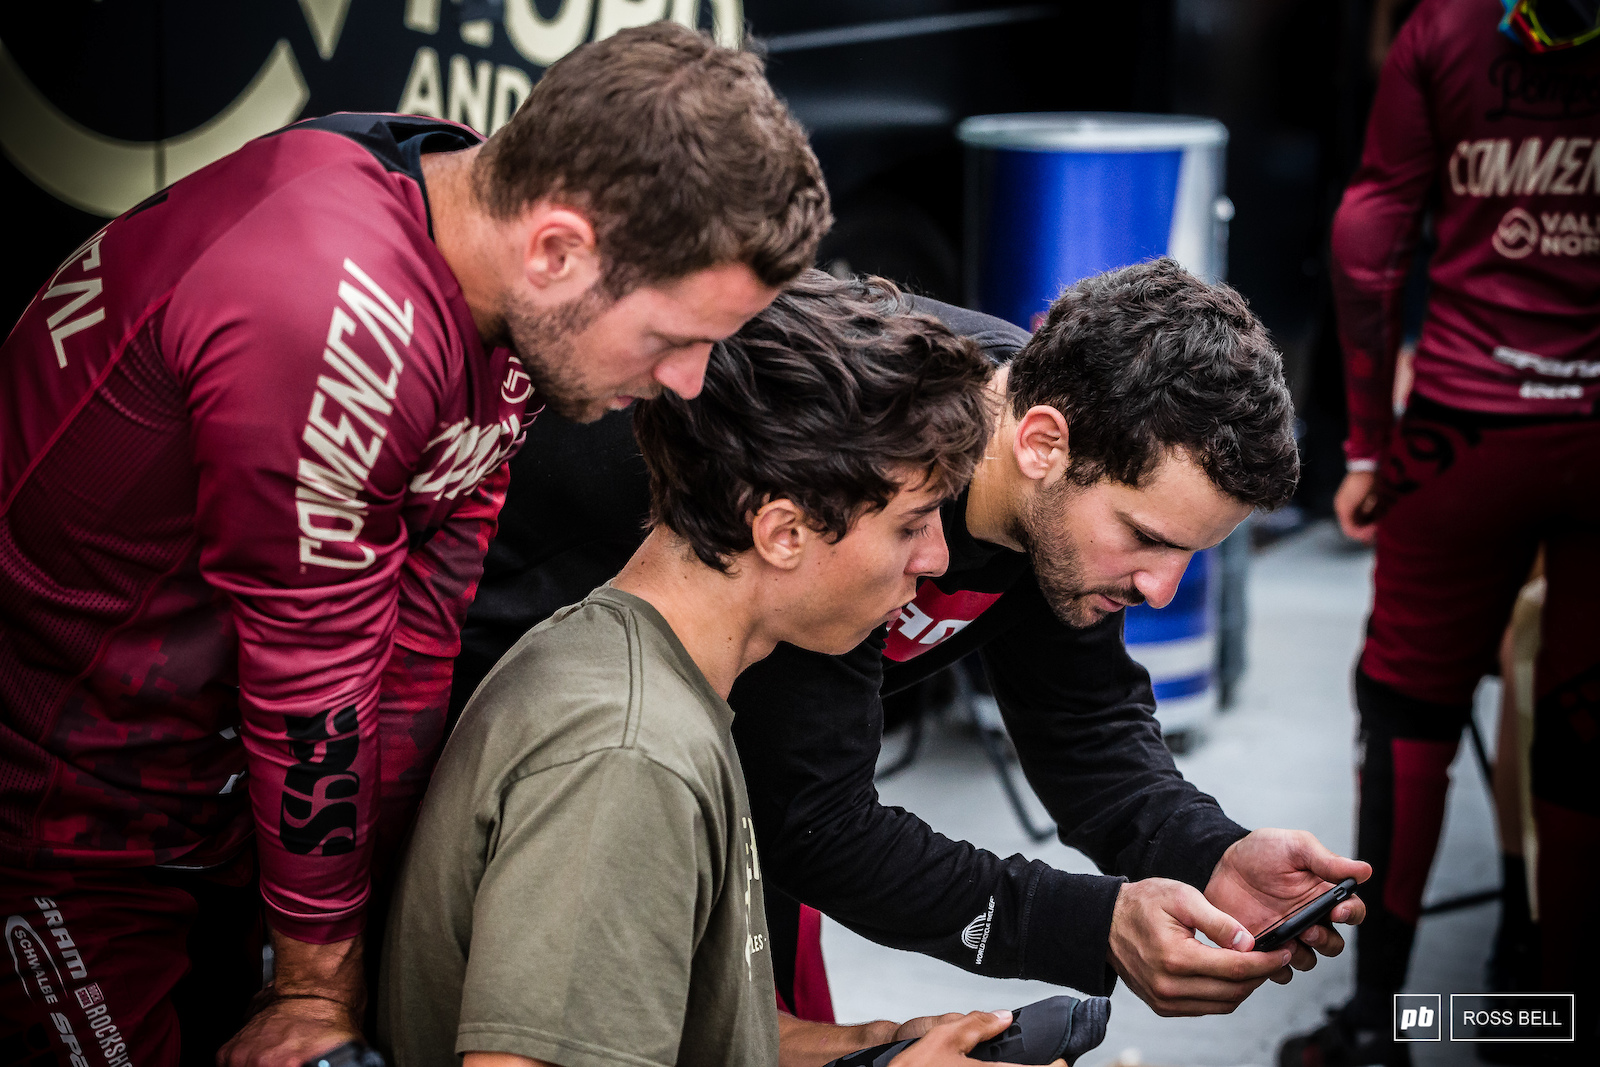 Gaetan Ruffin showing his Commencal Vallnord team mates Amaury Pierron and Remi Thirion some line choice before group B practice kicked off.